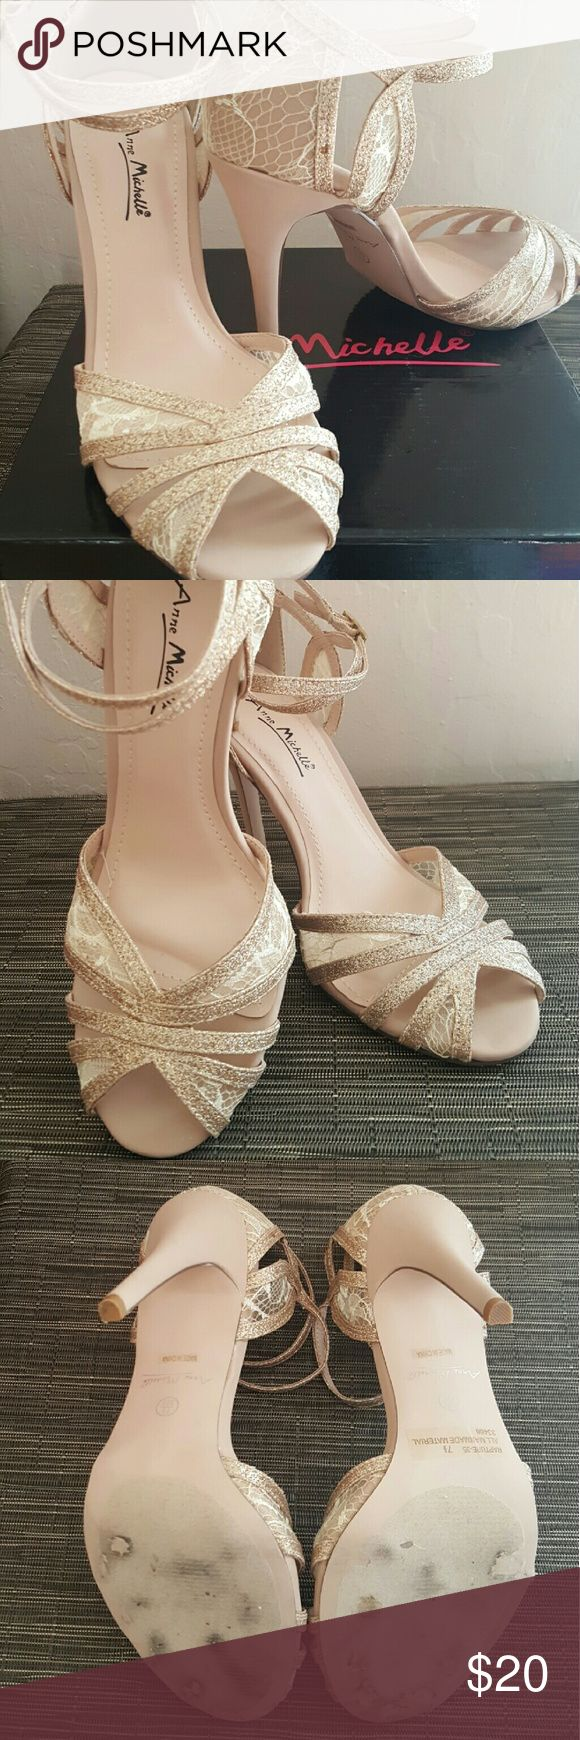 Anne Michelle Gold Sandals Heels Beautiful lace applicate, strap heels. Gold tone easy to match any outfit. Anne Michelle Shoes Sandals